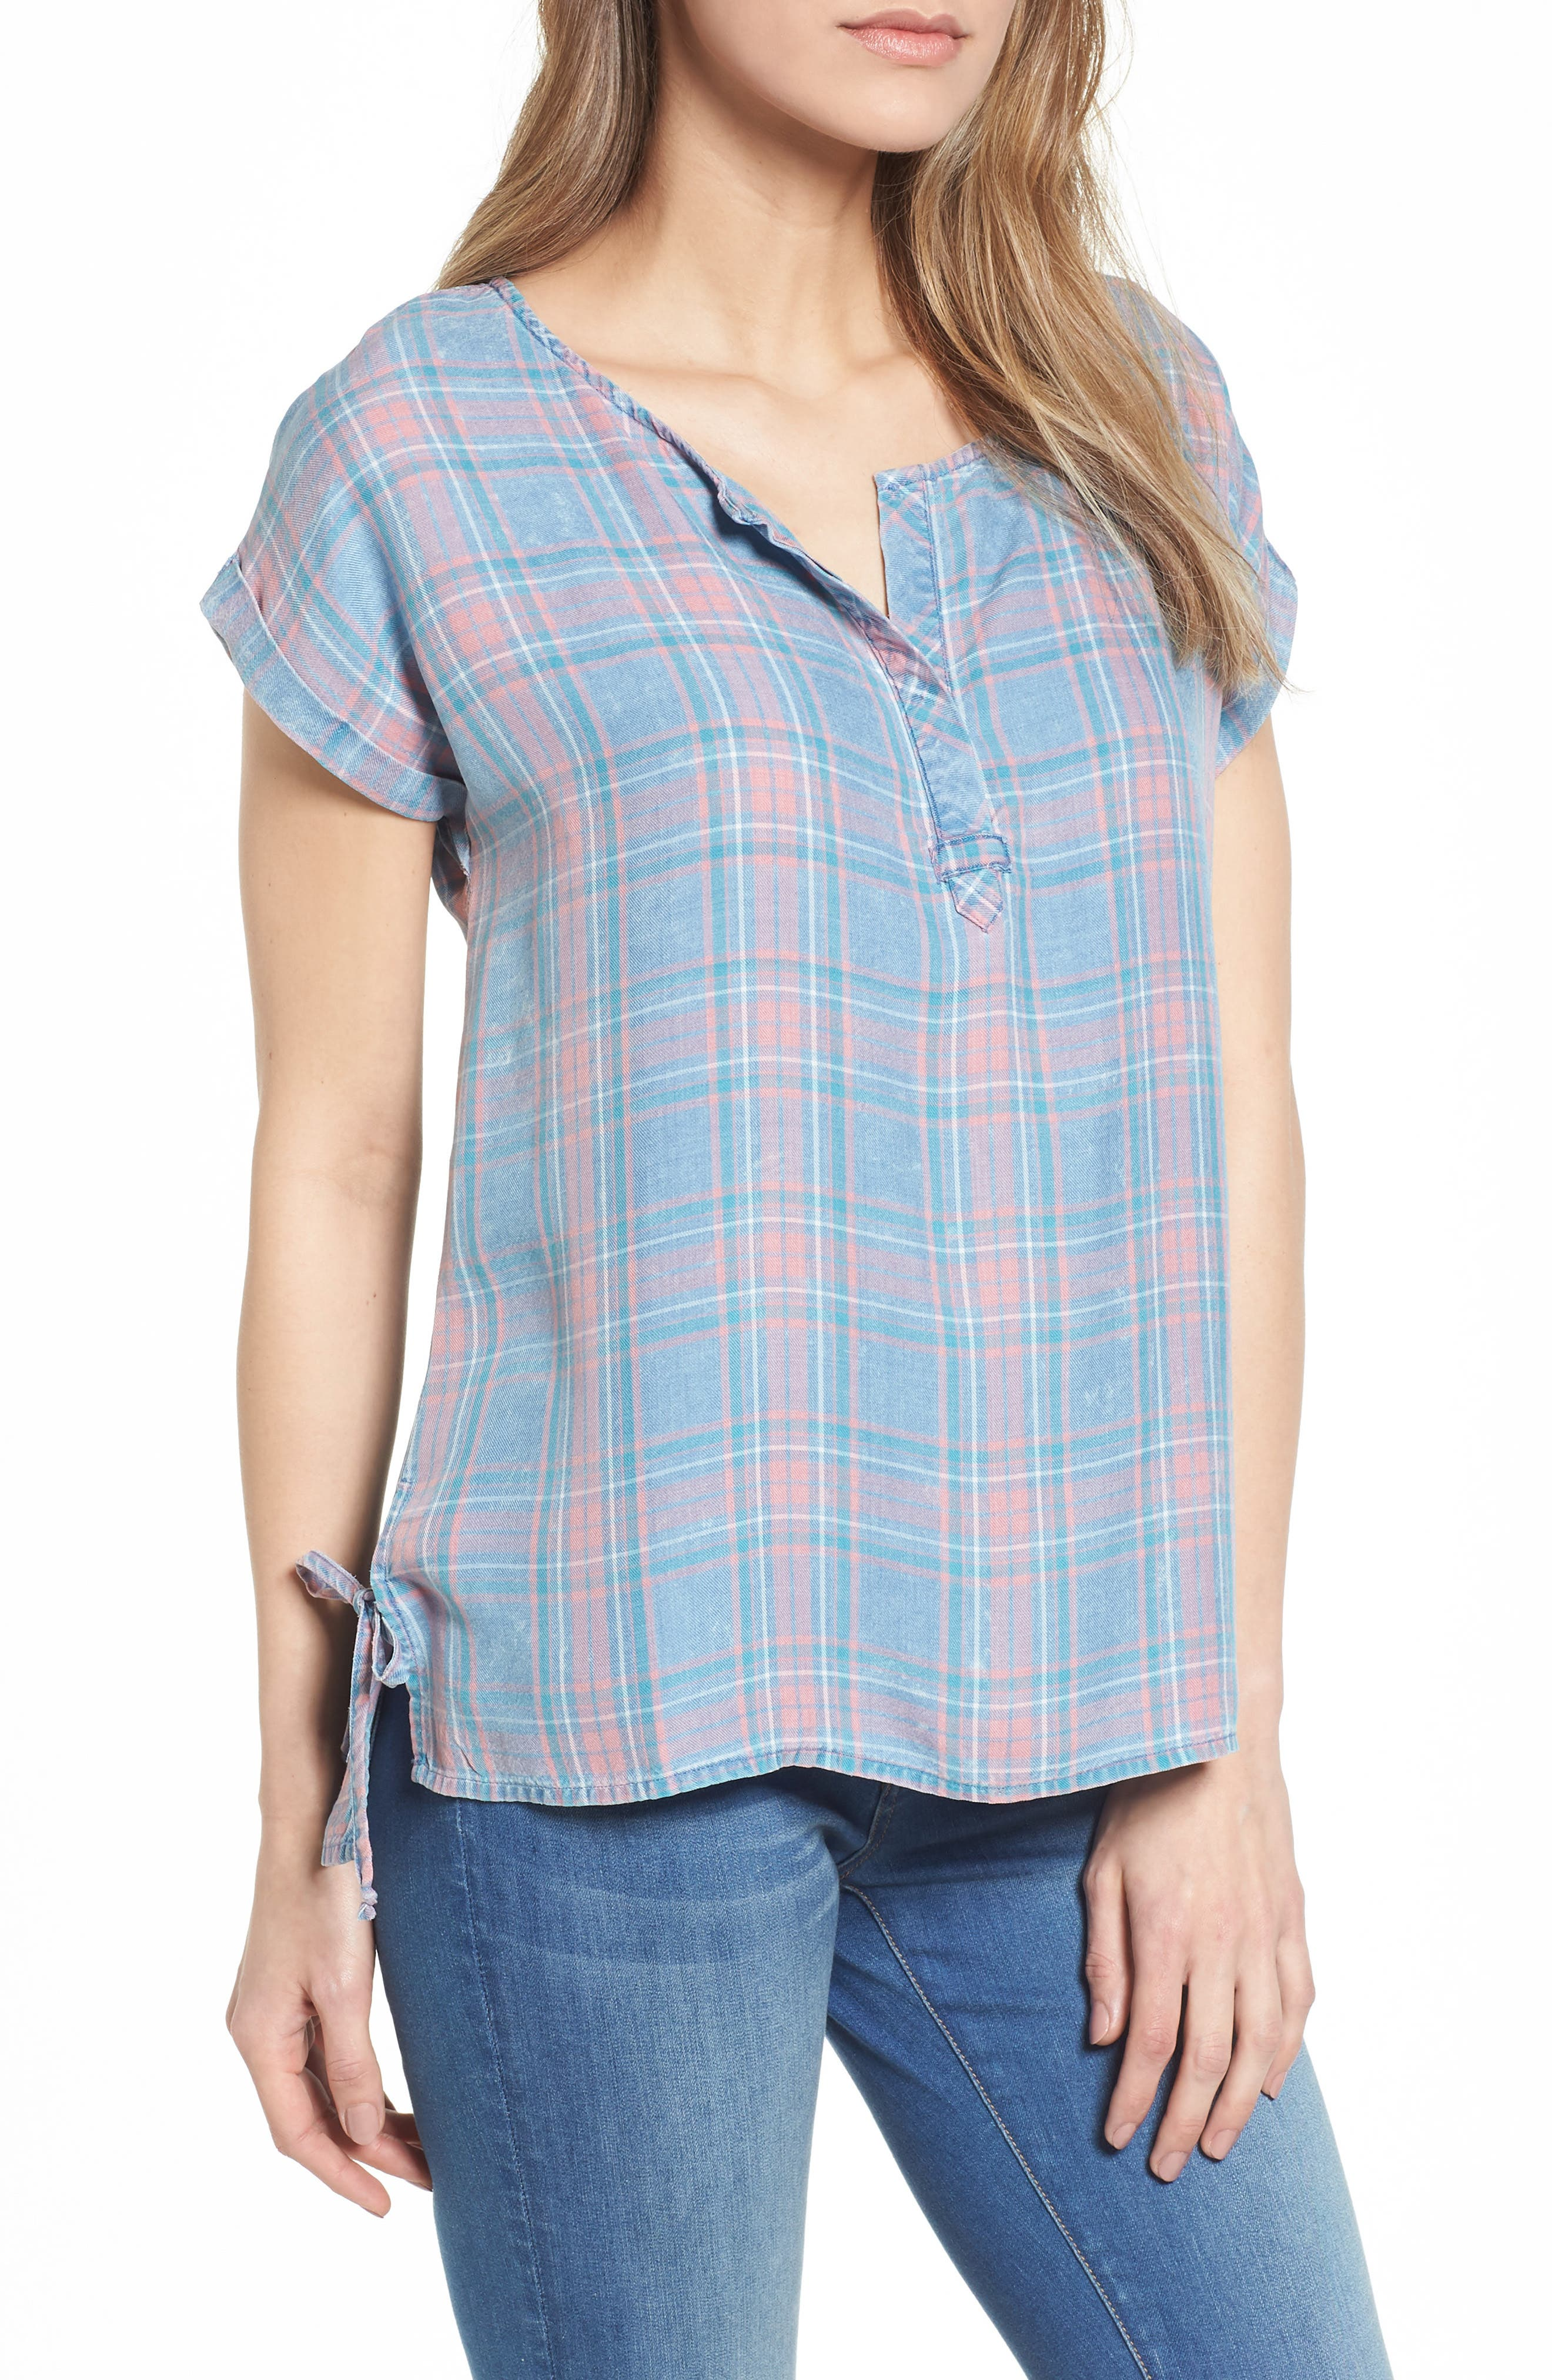 Women's Plaid Tops & Tees | Nordstrom